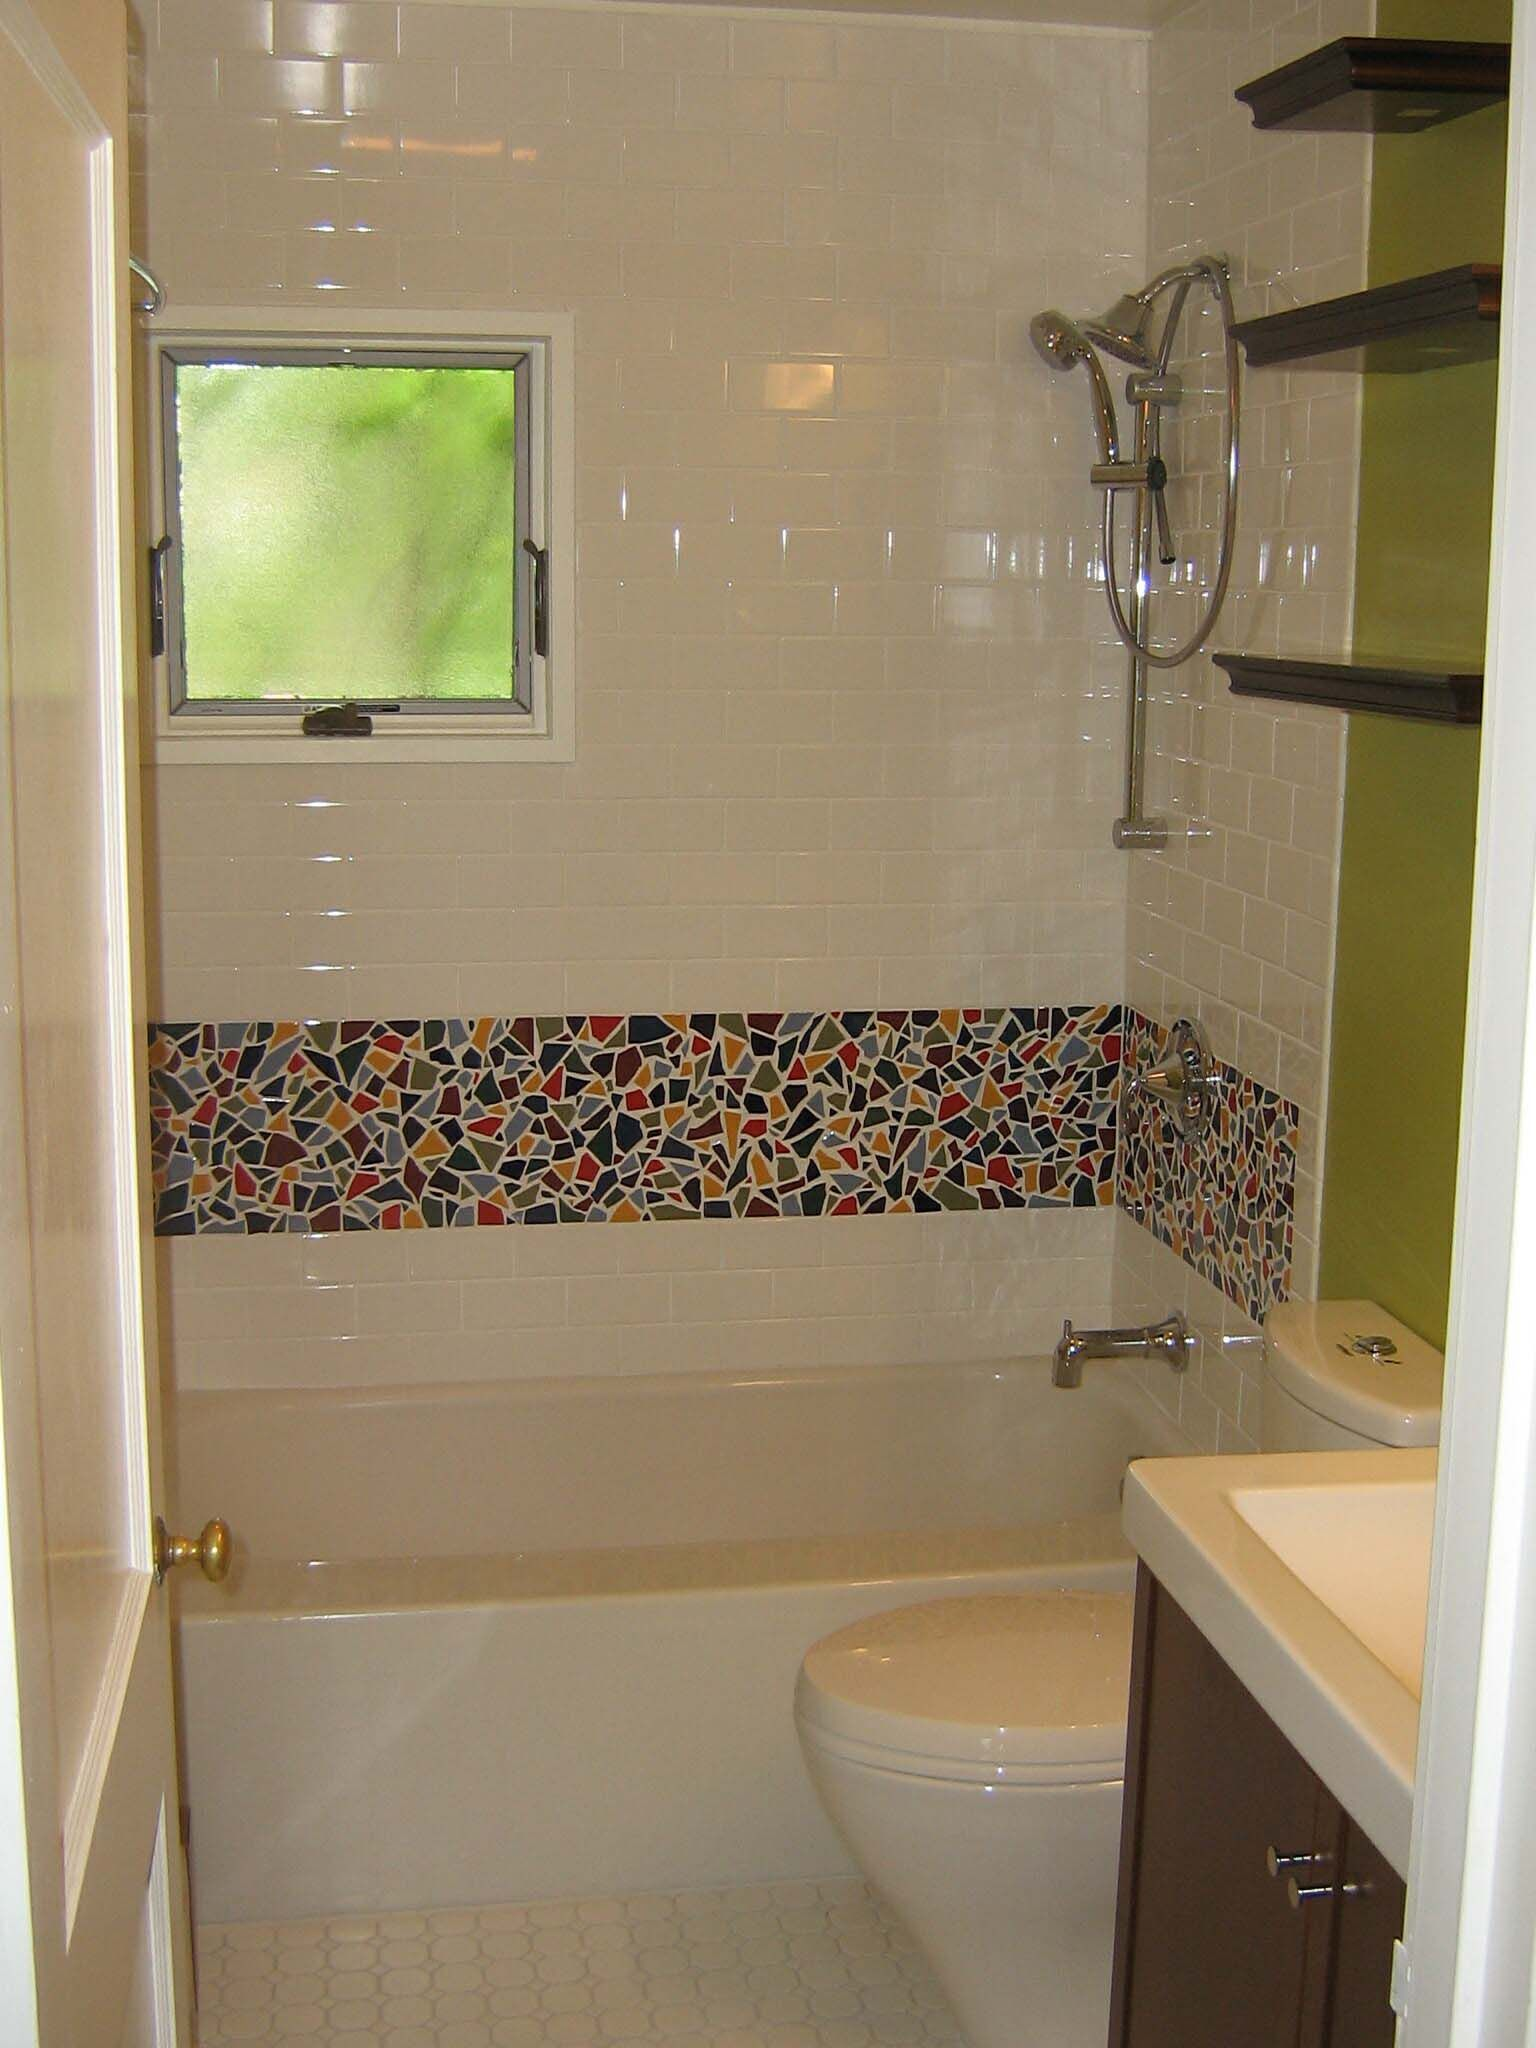 Fancy Bathroom Tile Border Lication For Diffe Usage Usual Door Model Facing Small Window Above Interesting Closed Low Bathtub